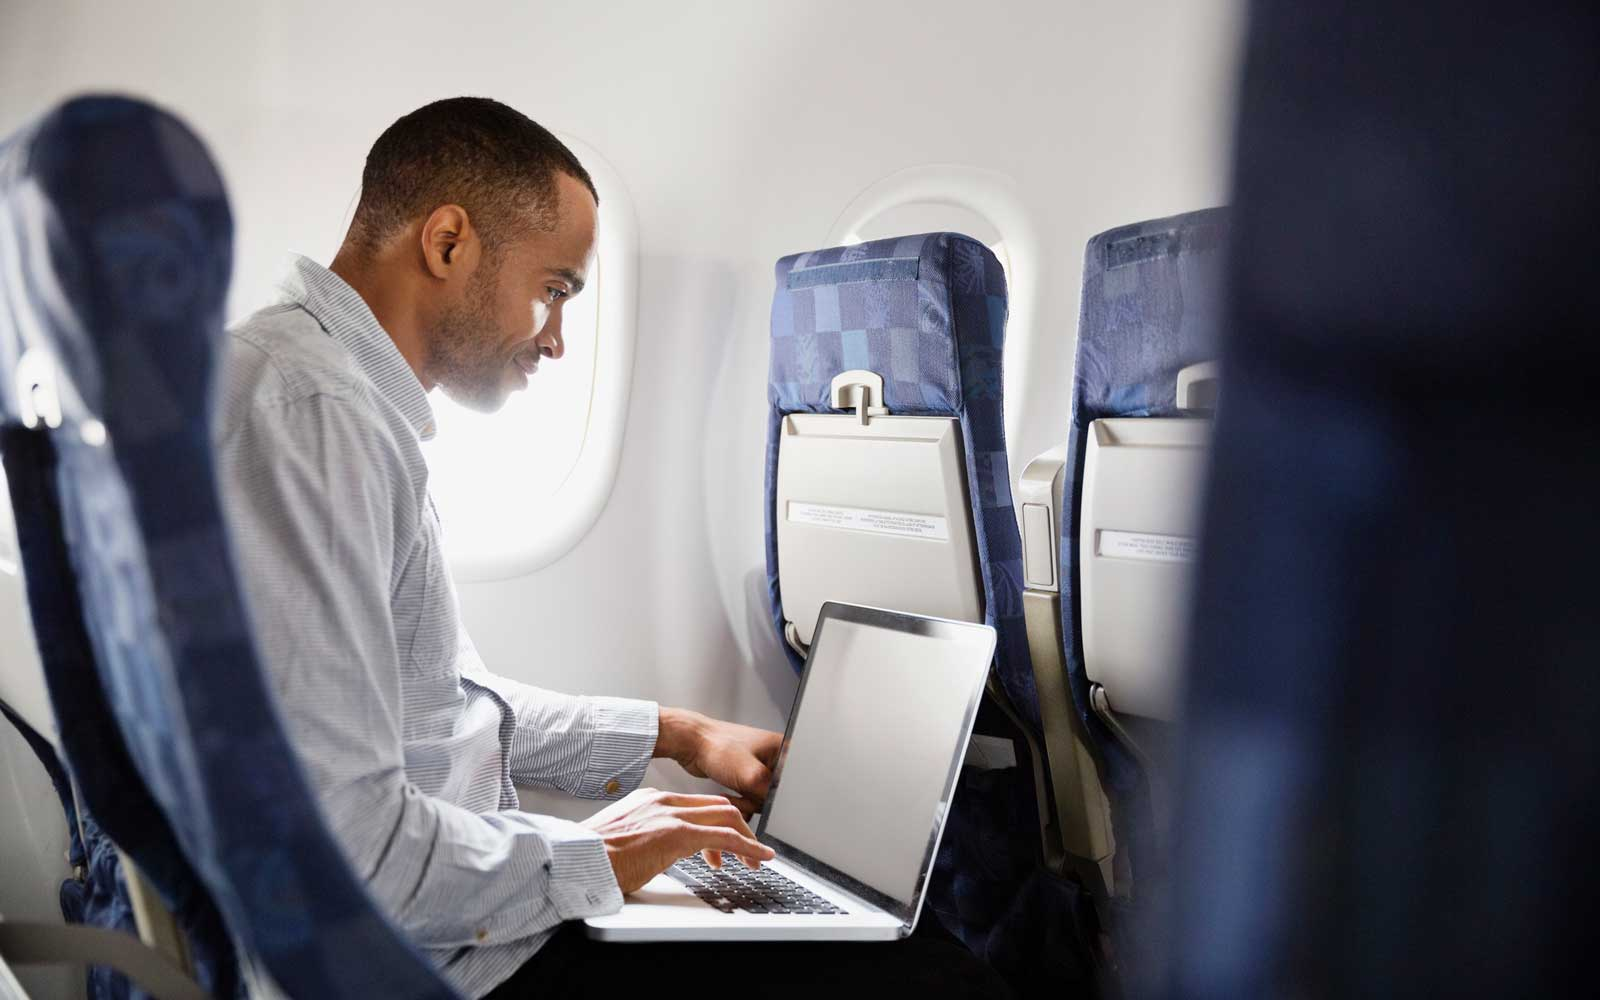 How to Get Work Done on a Plane, According to Absurdly Productive Frequent Fliers